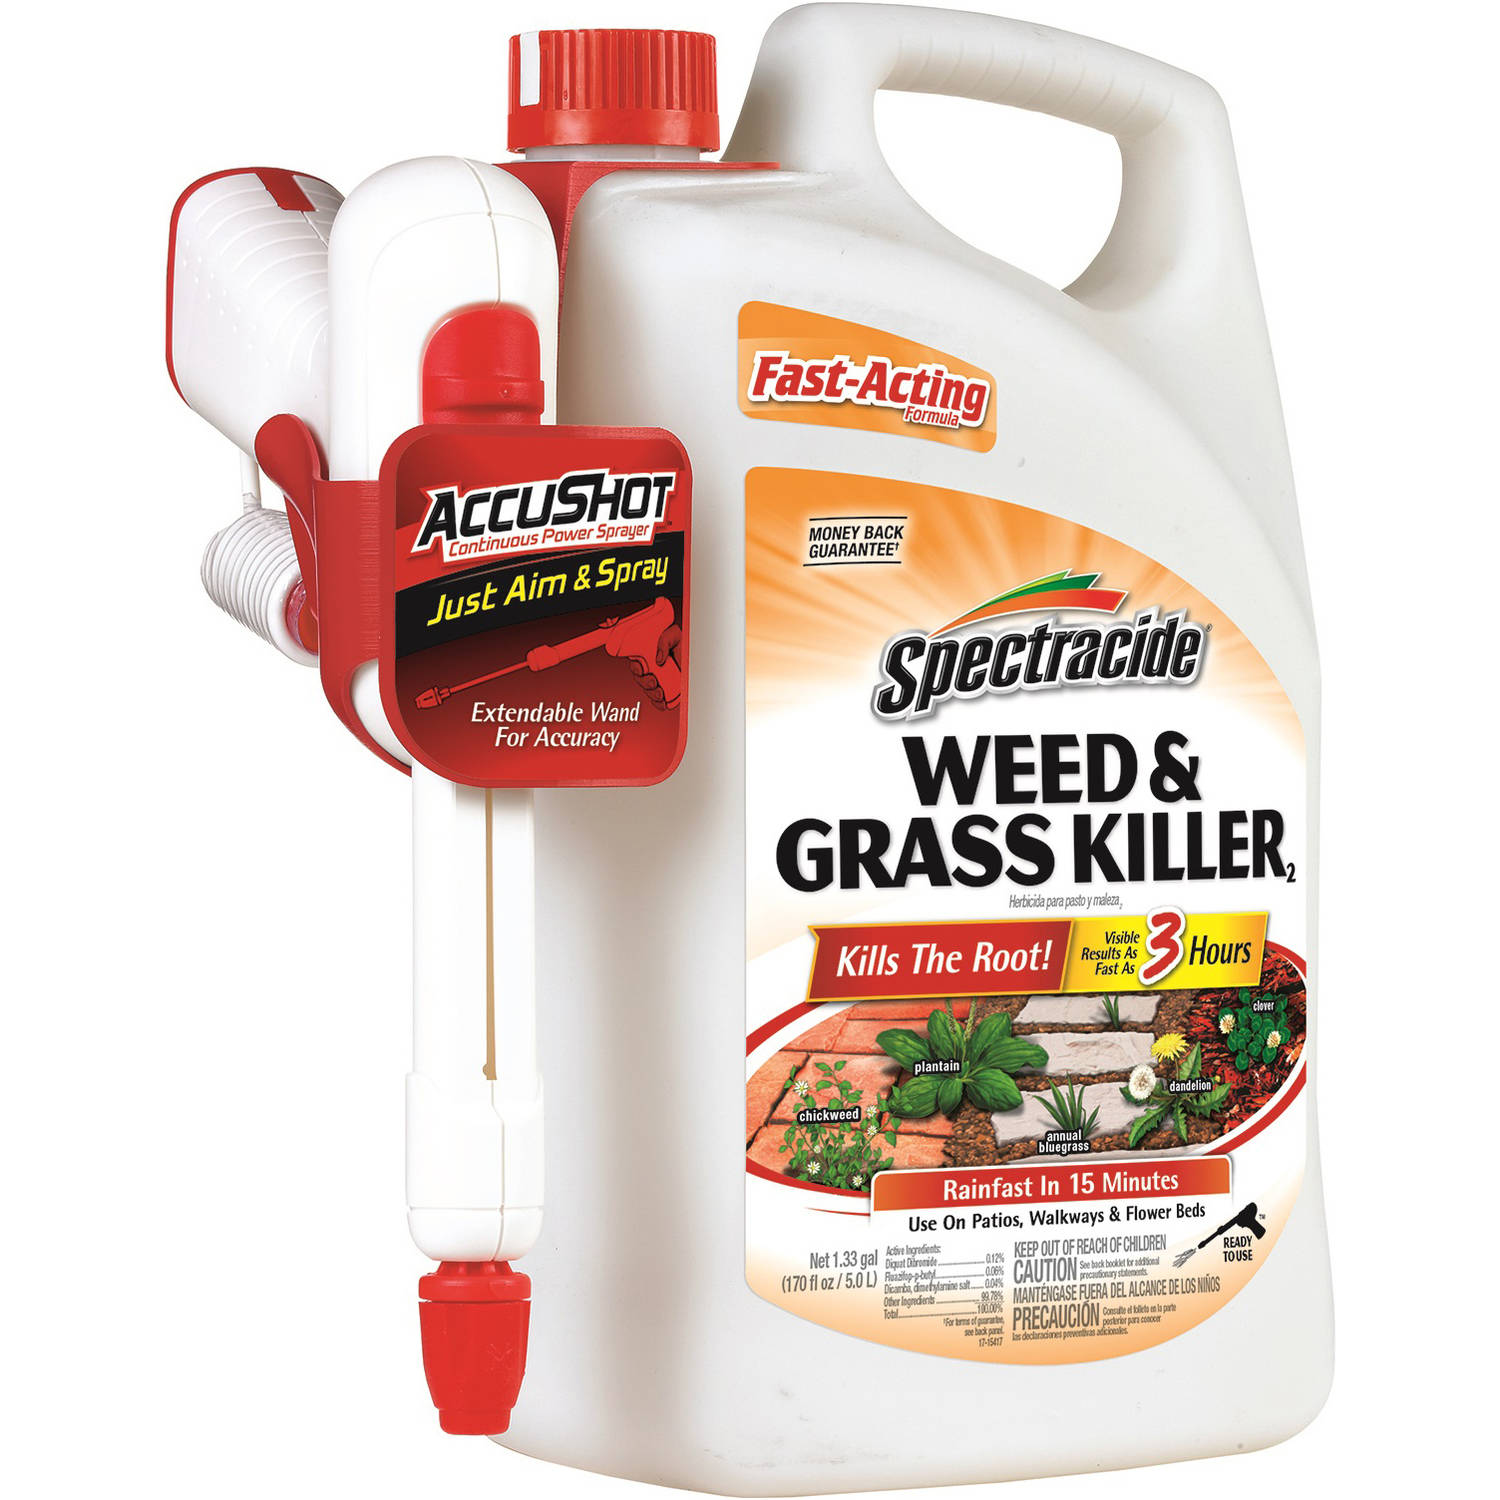 Spectracide Weed and Grass Killer with AccuShot Continuous Power Sprayer